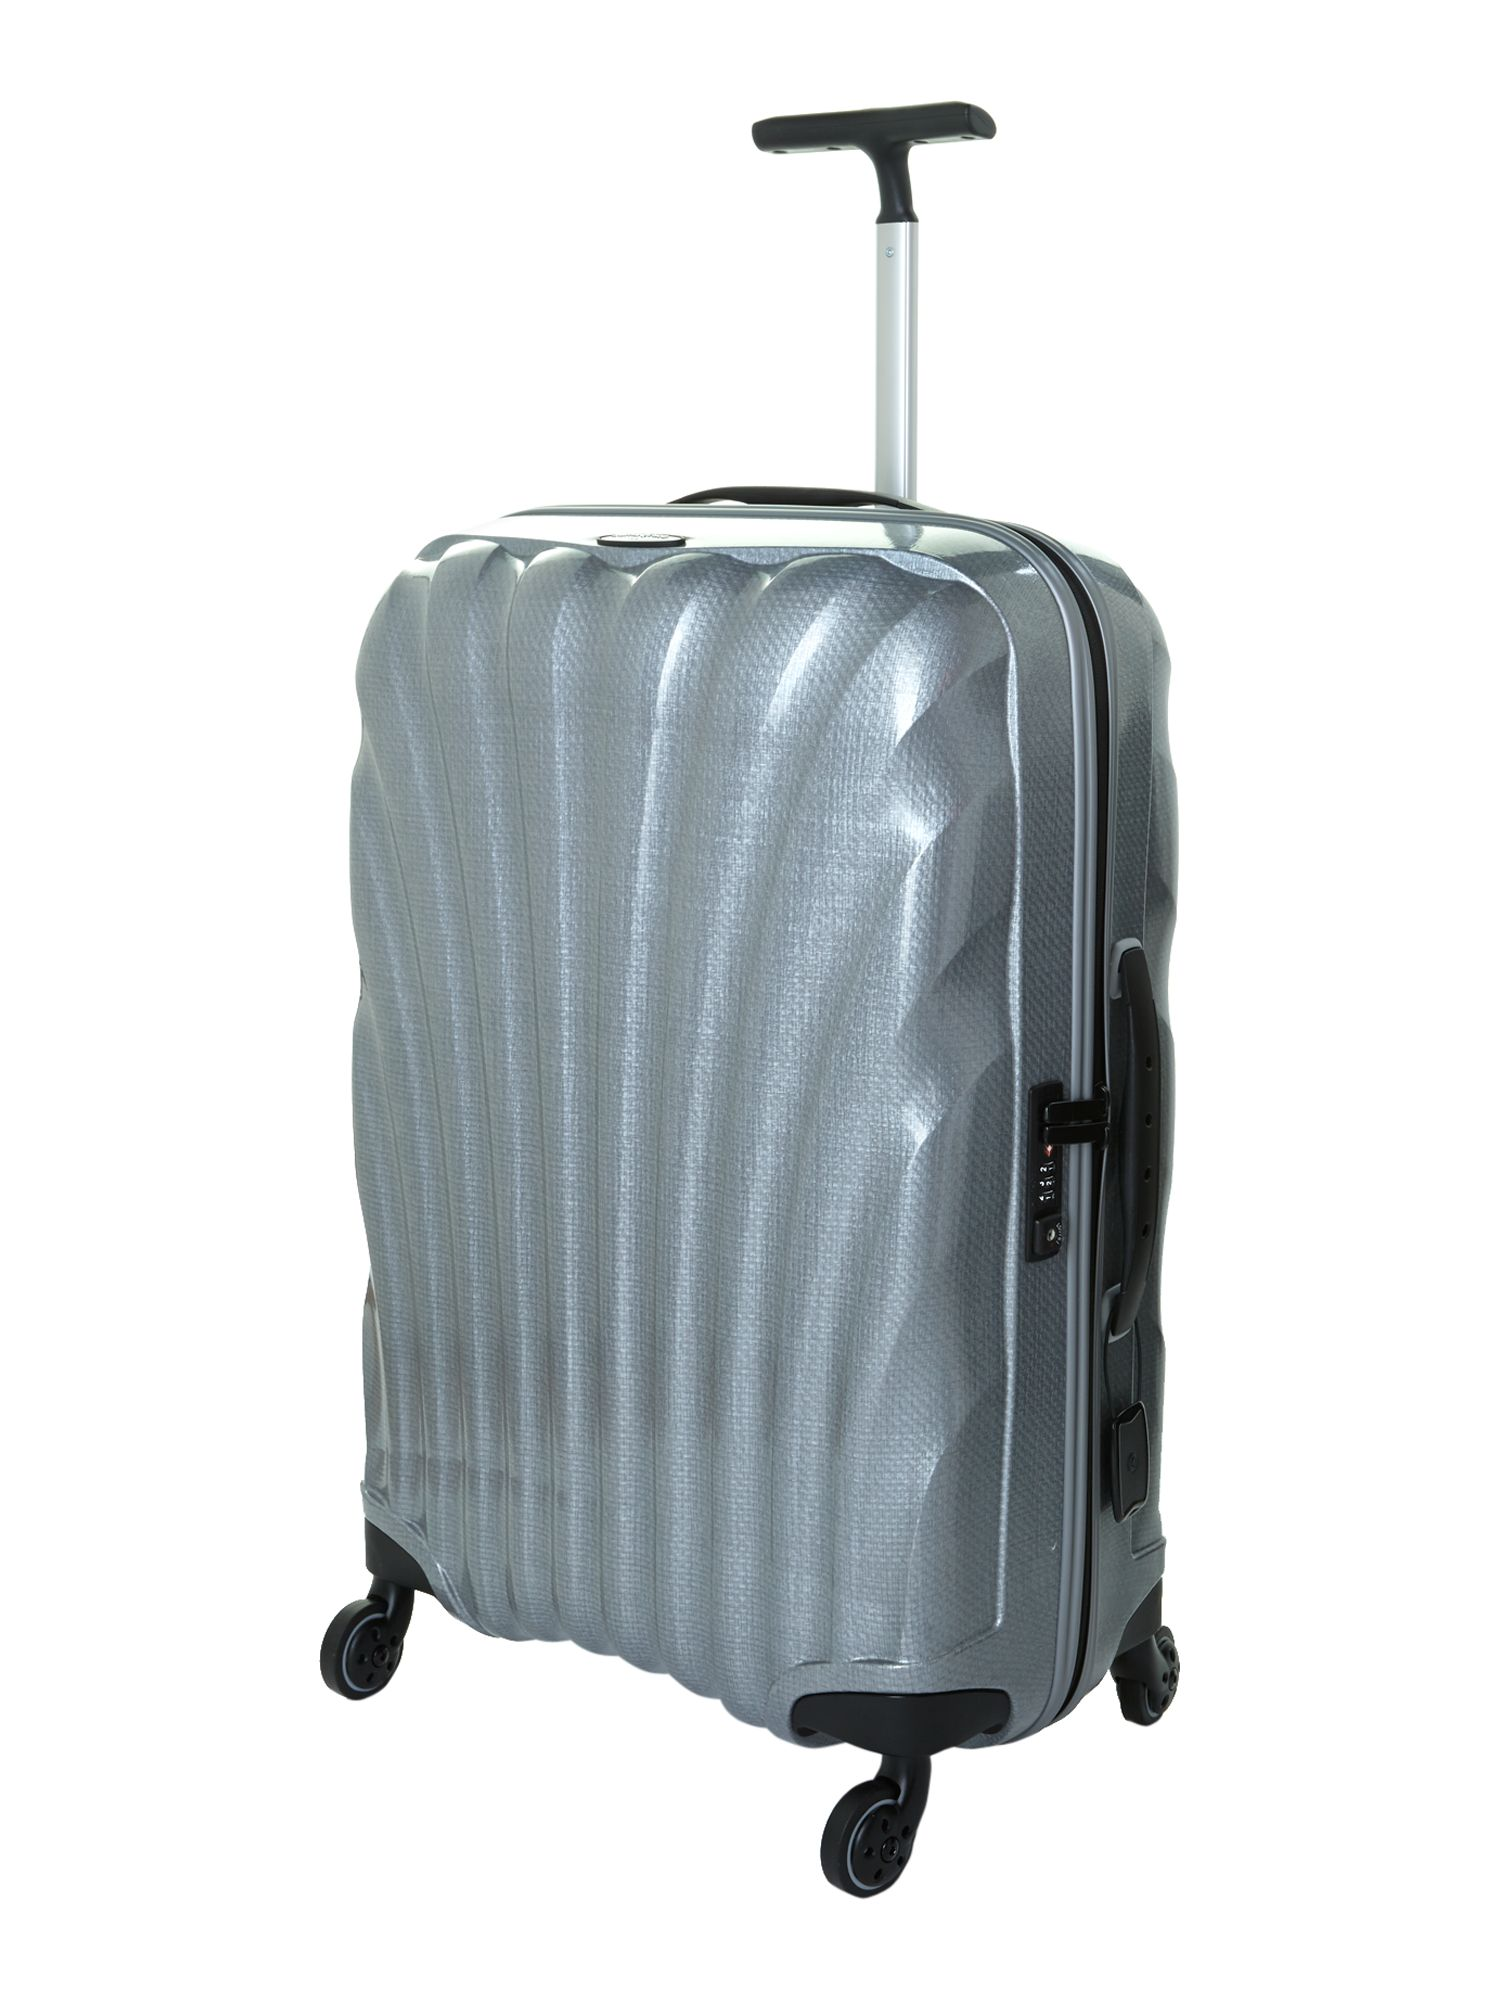 New cosmolite 4-wheel medium suitcase